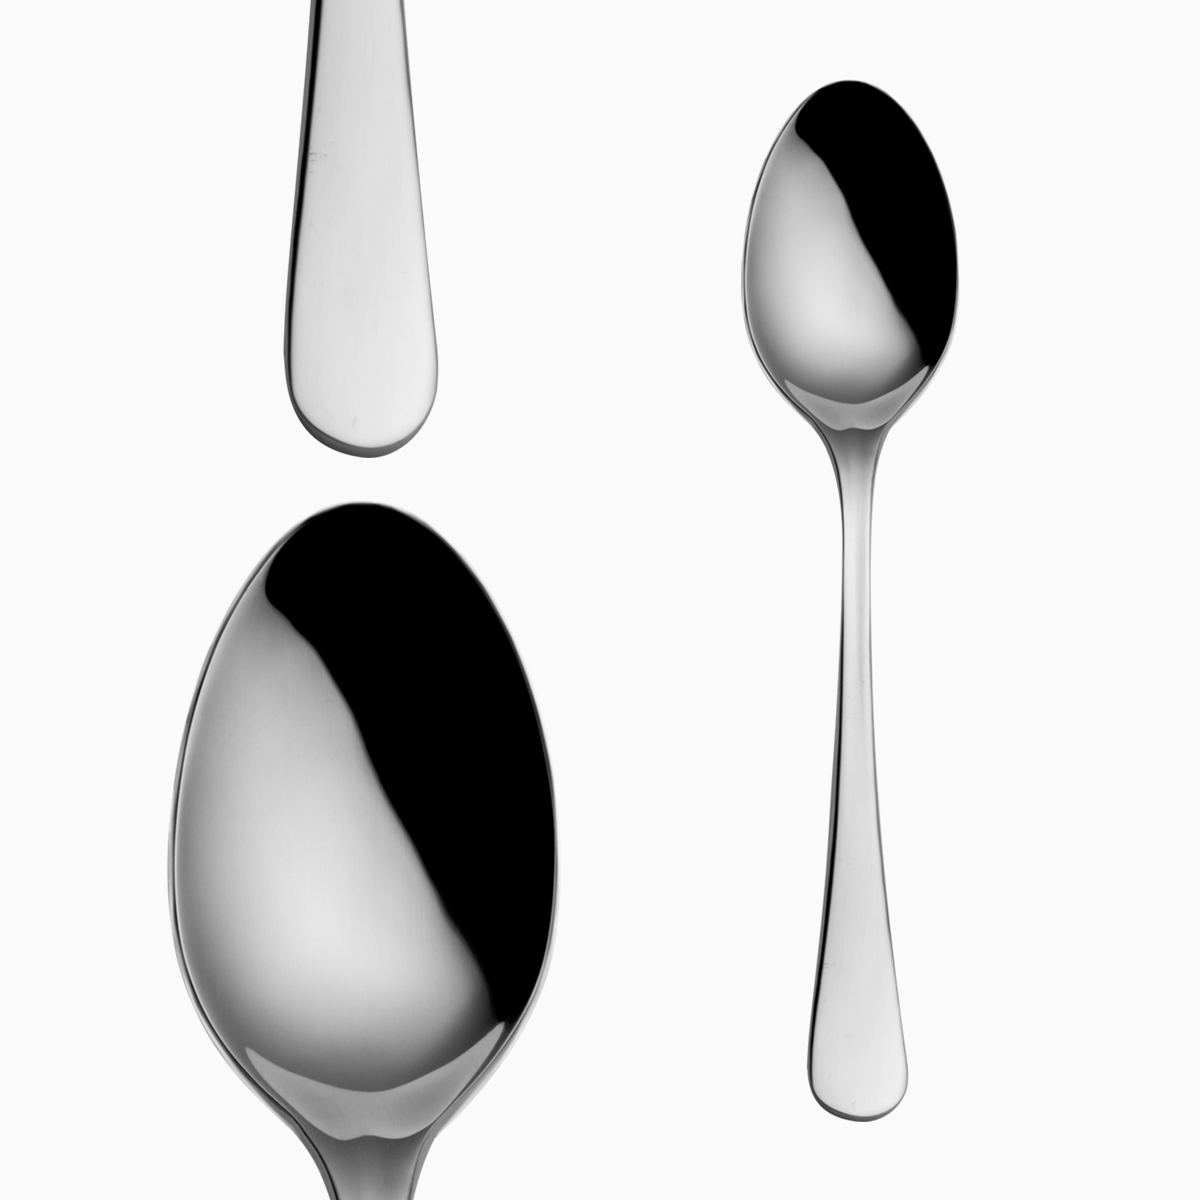 Table spoon - Bacchus CNS